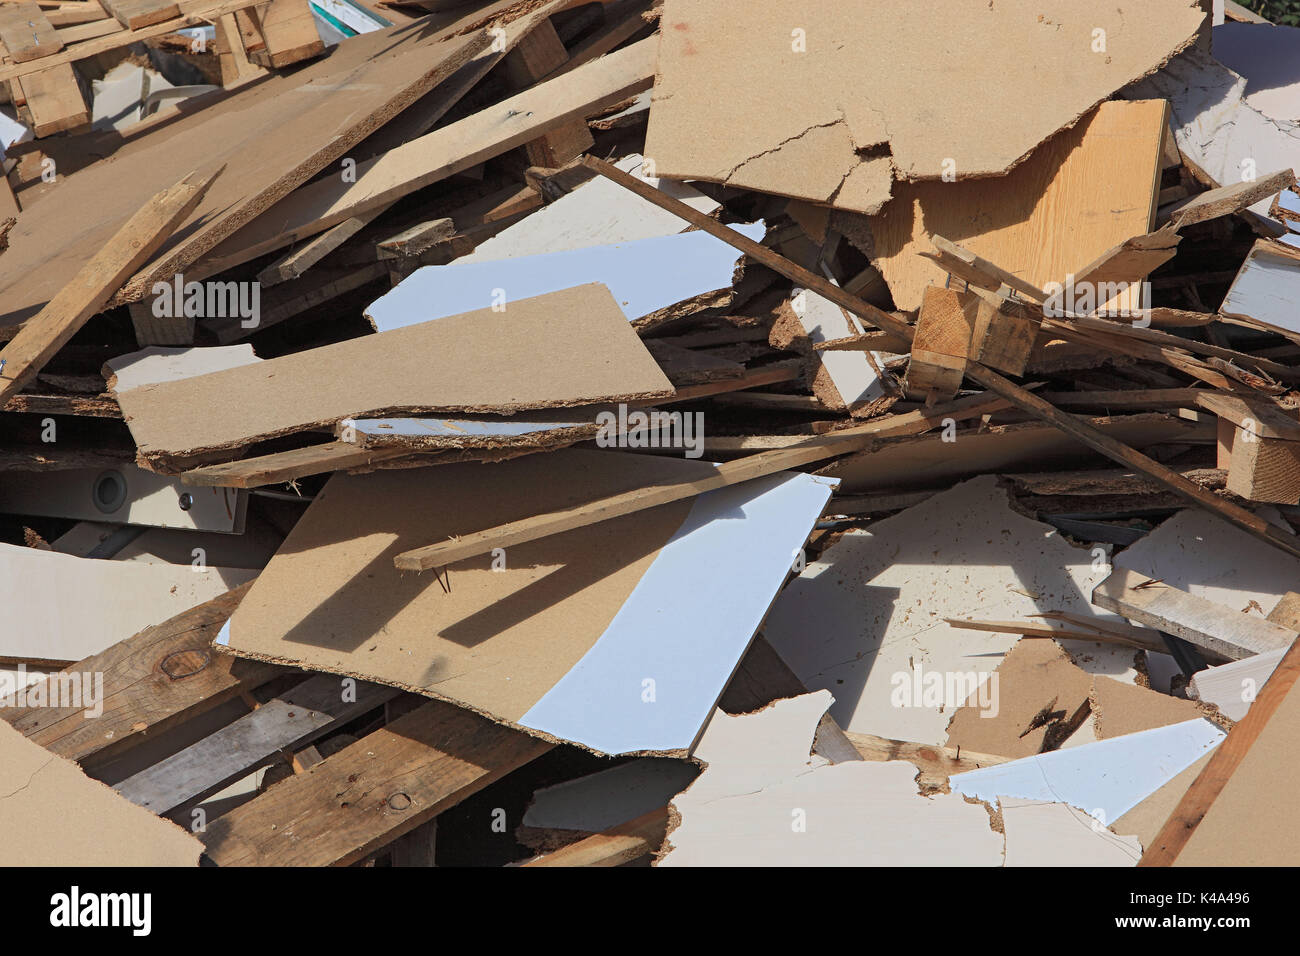 Rubbish, ignitable waste wood and chip records, in a disposal company, Abfall, brennbare Holzabfaelle und Spanplatten, Stock Photo